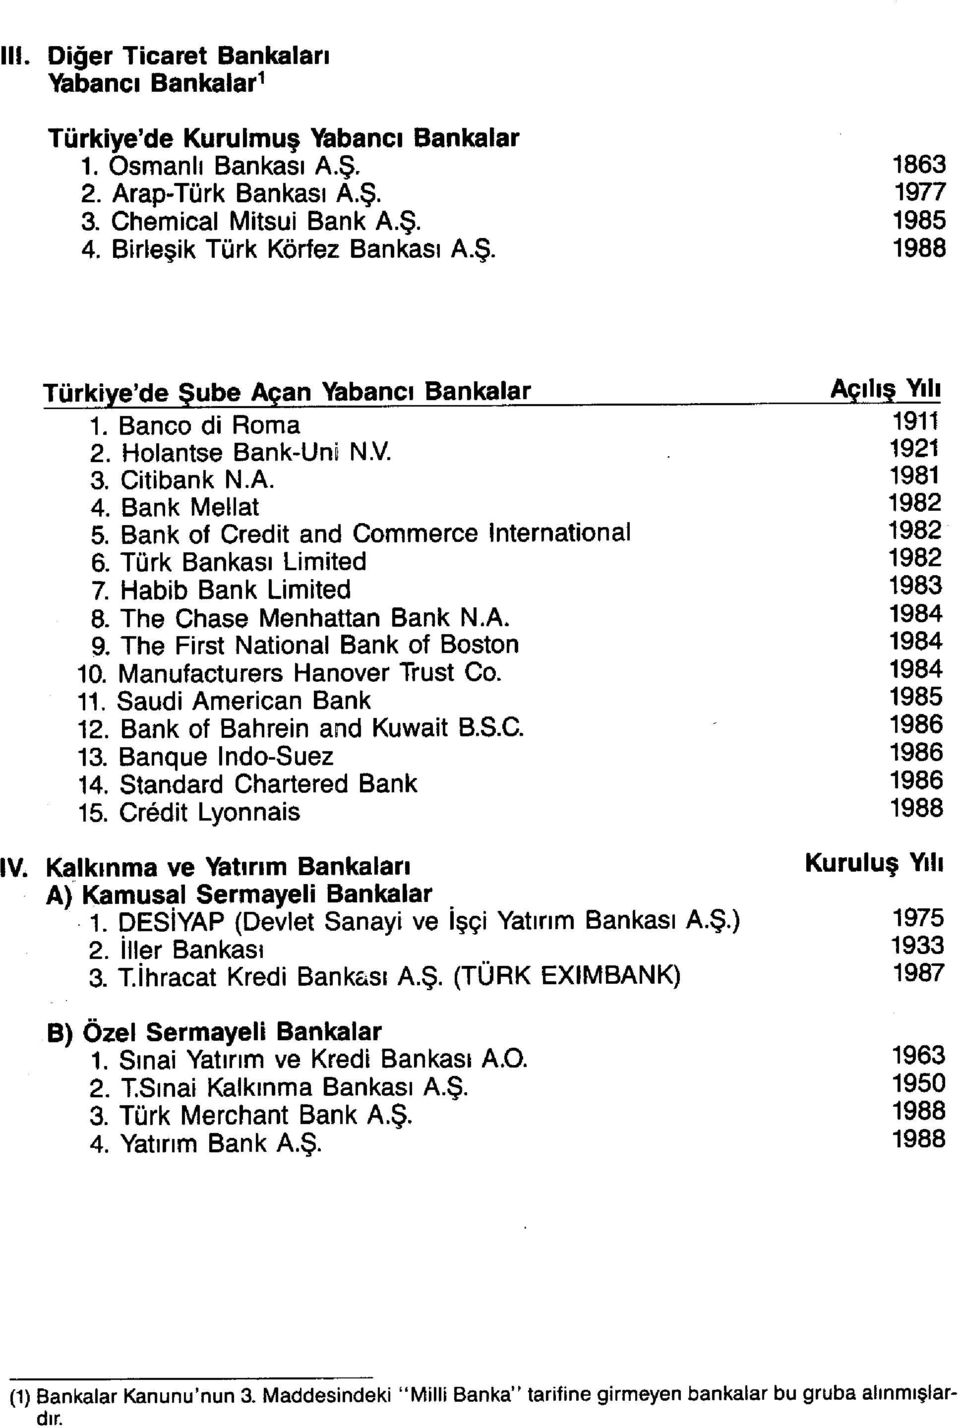 Bank of Credit and Commerce International 1982 6. Türk Bankası Limited 1982 7 Habib Bank Limited 1983 8. The Chase Menhattan Bank N.A. 1984 9. The First National Bank of Boston 1984 10.